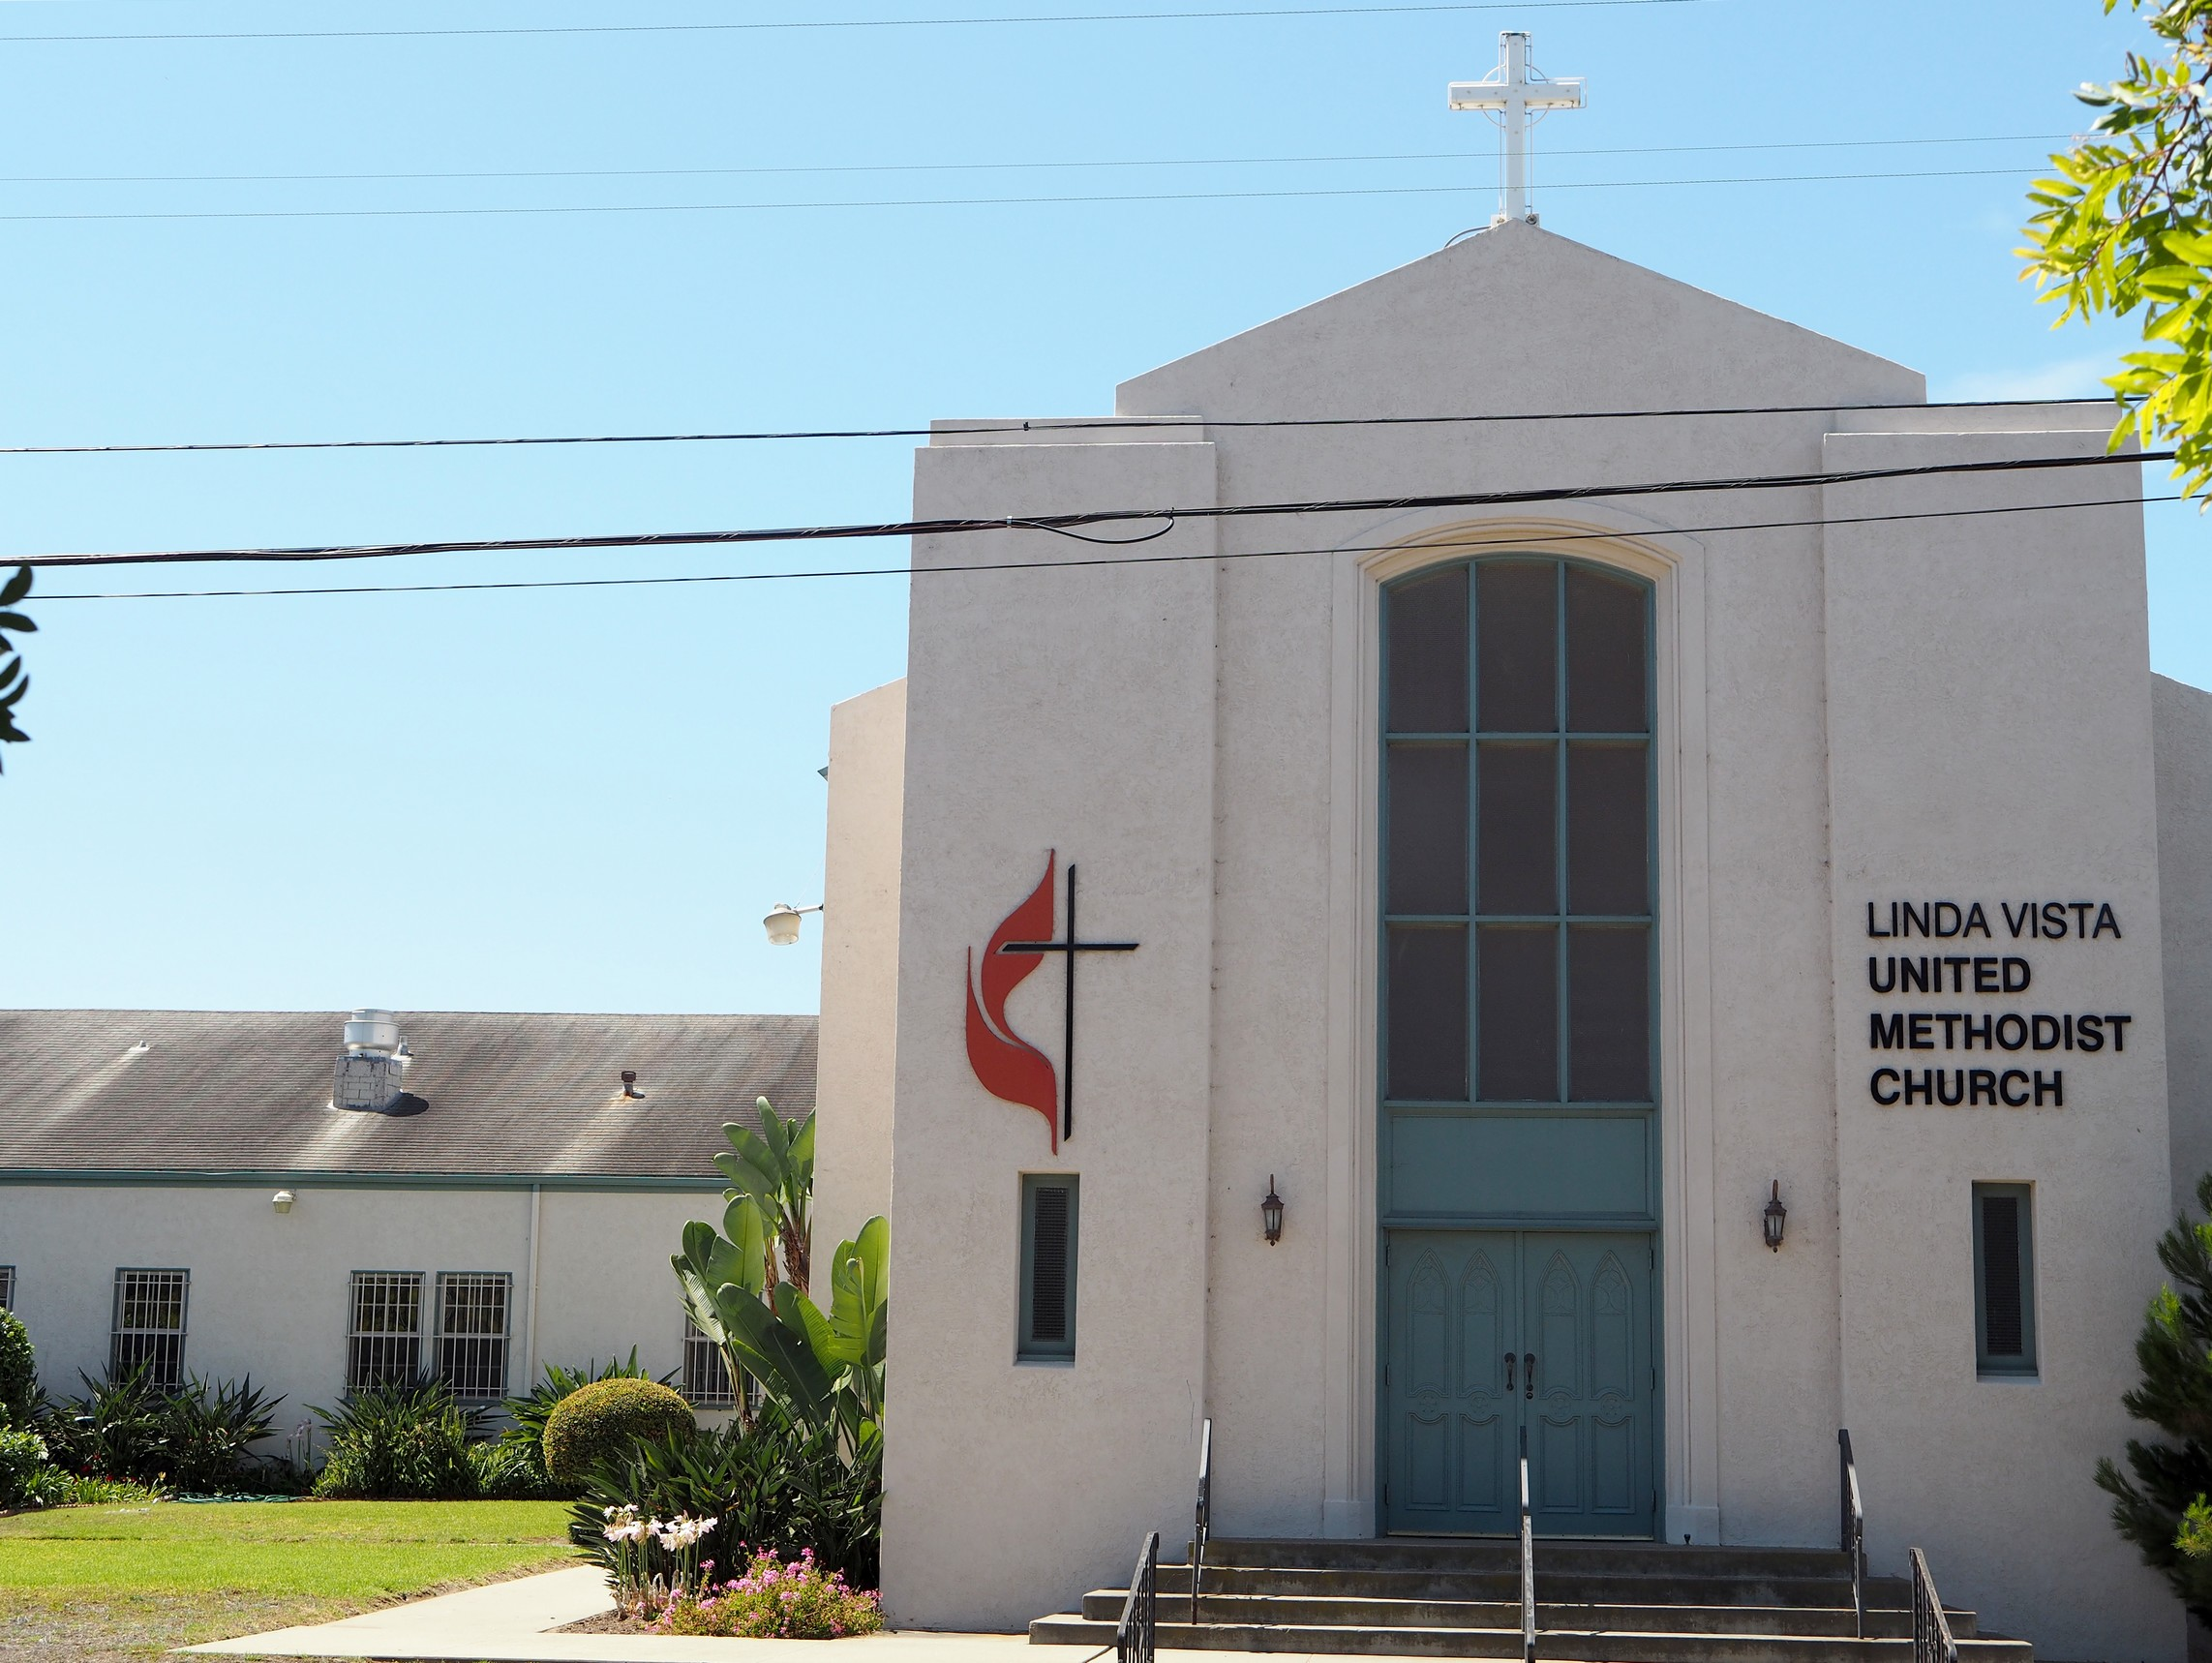 Linda Vista United Methodist Church